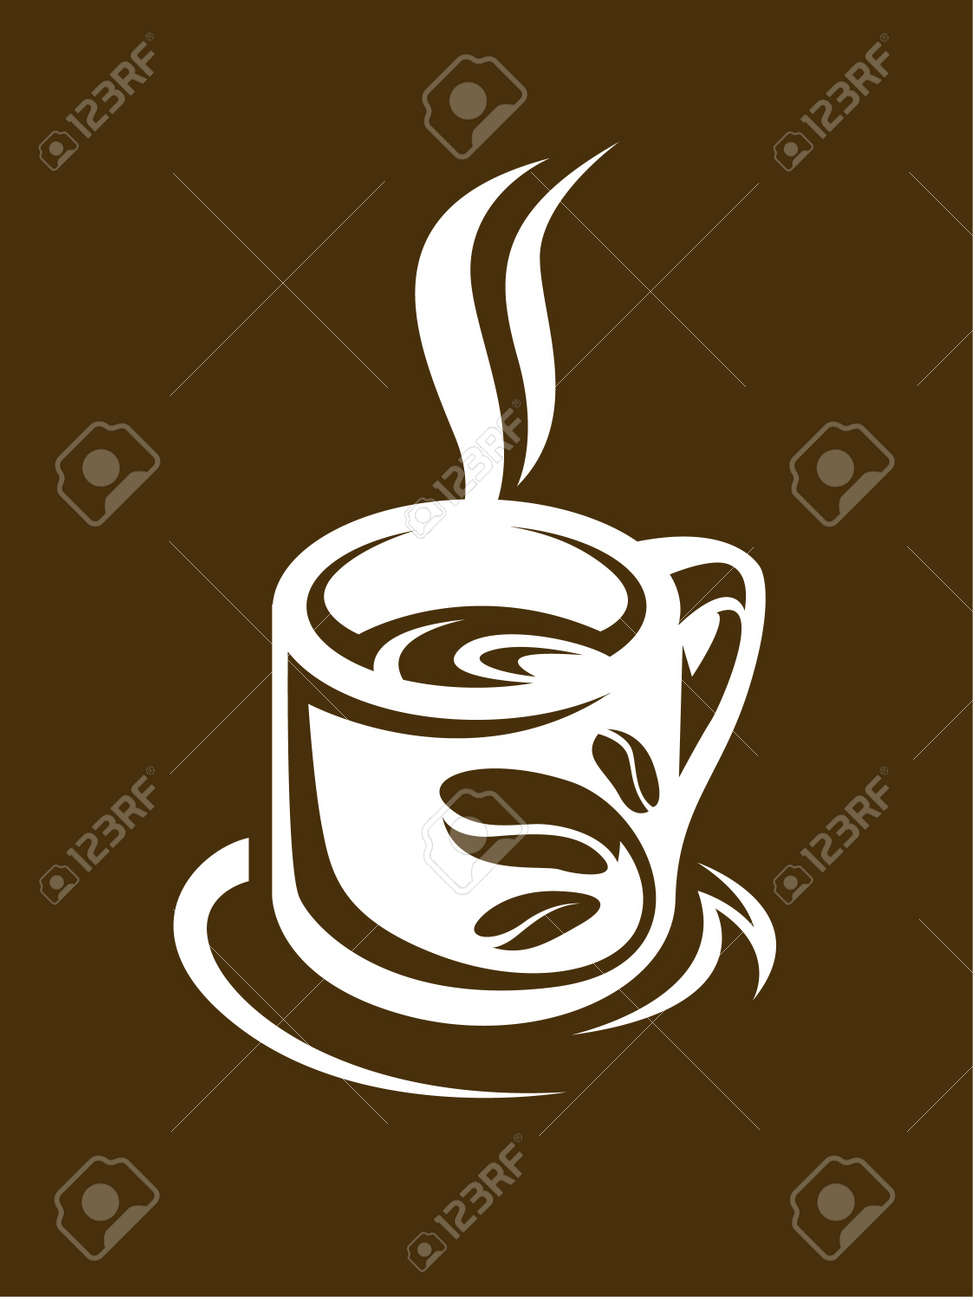 Abstract Coffee Cup And Saucer Royalty Free Cliparts Vectors And Stock Illustration Image 11650282